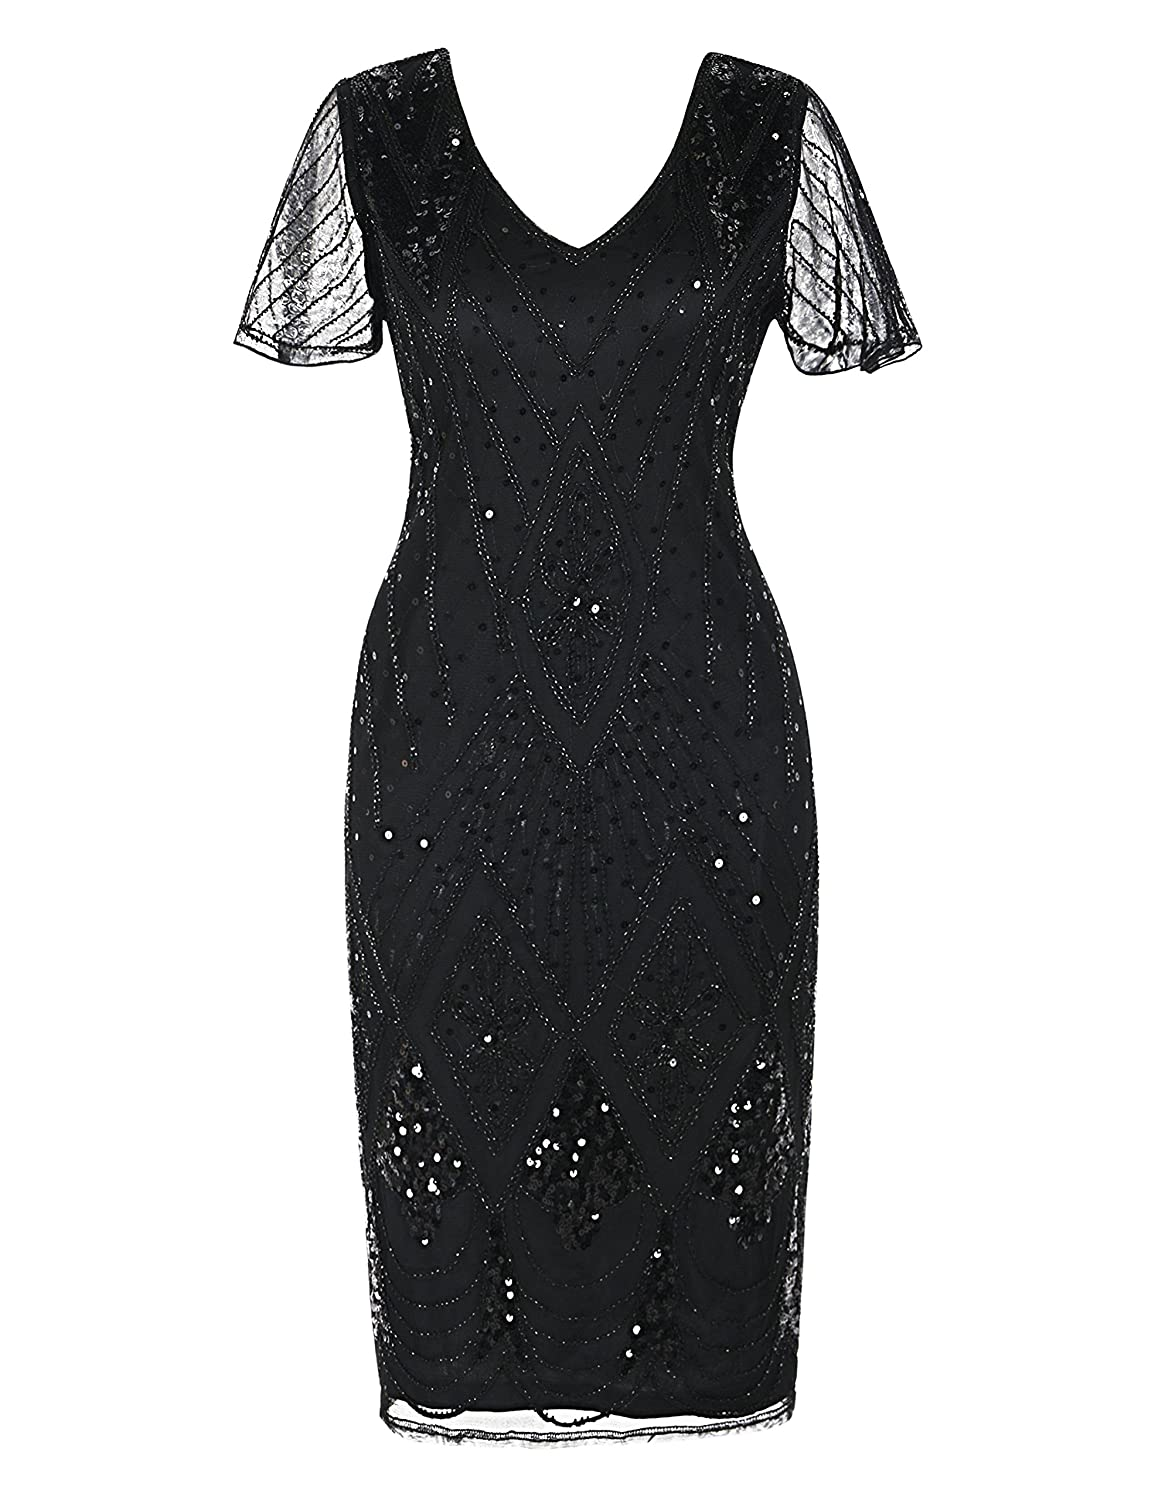 f53eda4c Beaded short sleeve,zipper closure,shift dress midi length Cocktail flapper  dress,1920s style